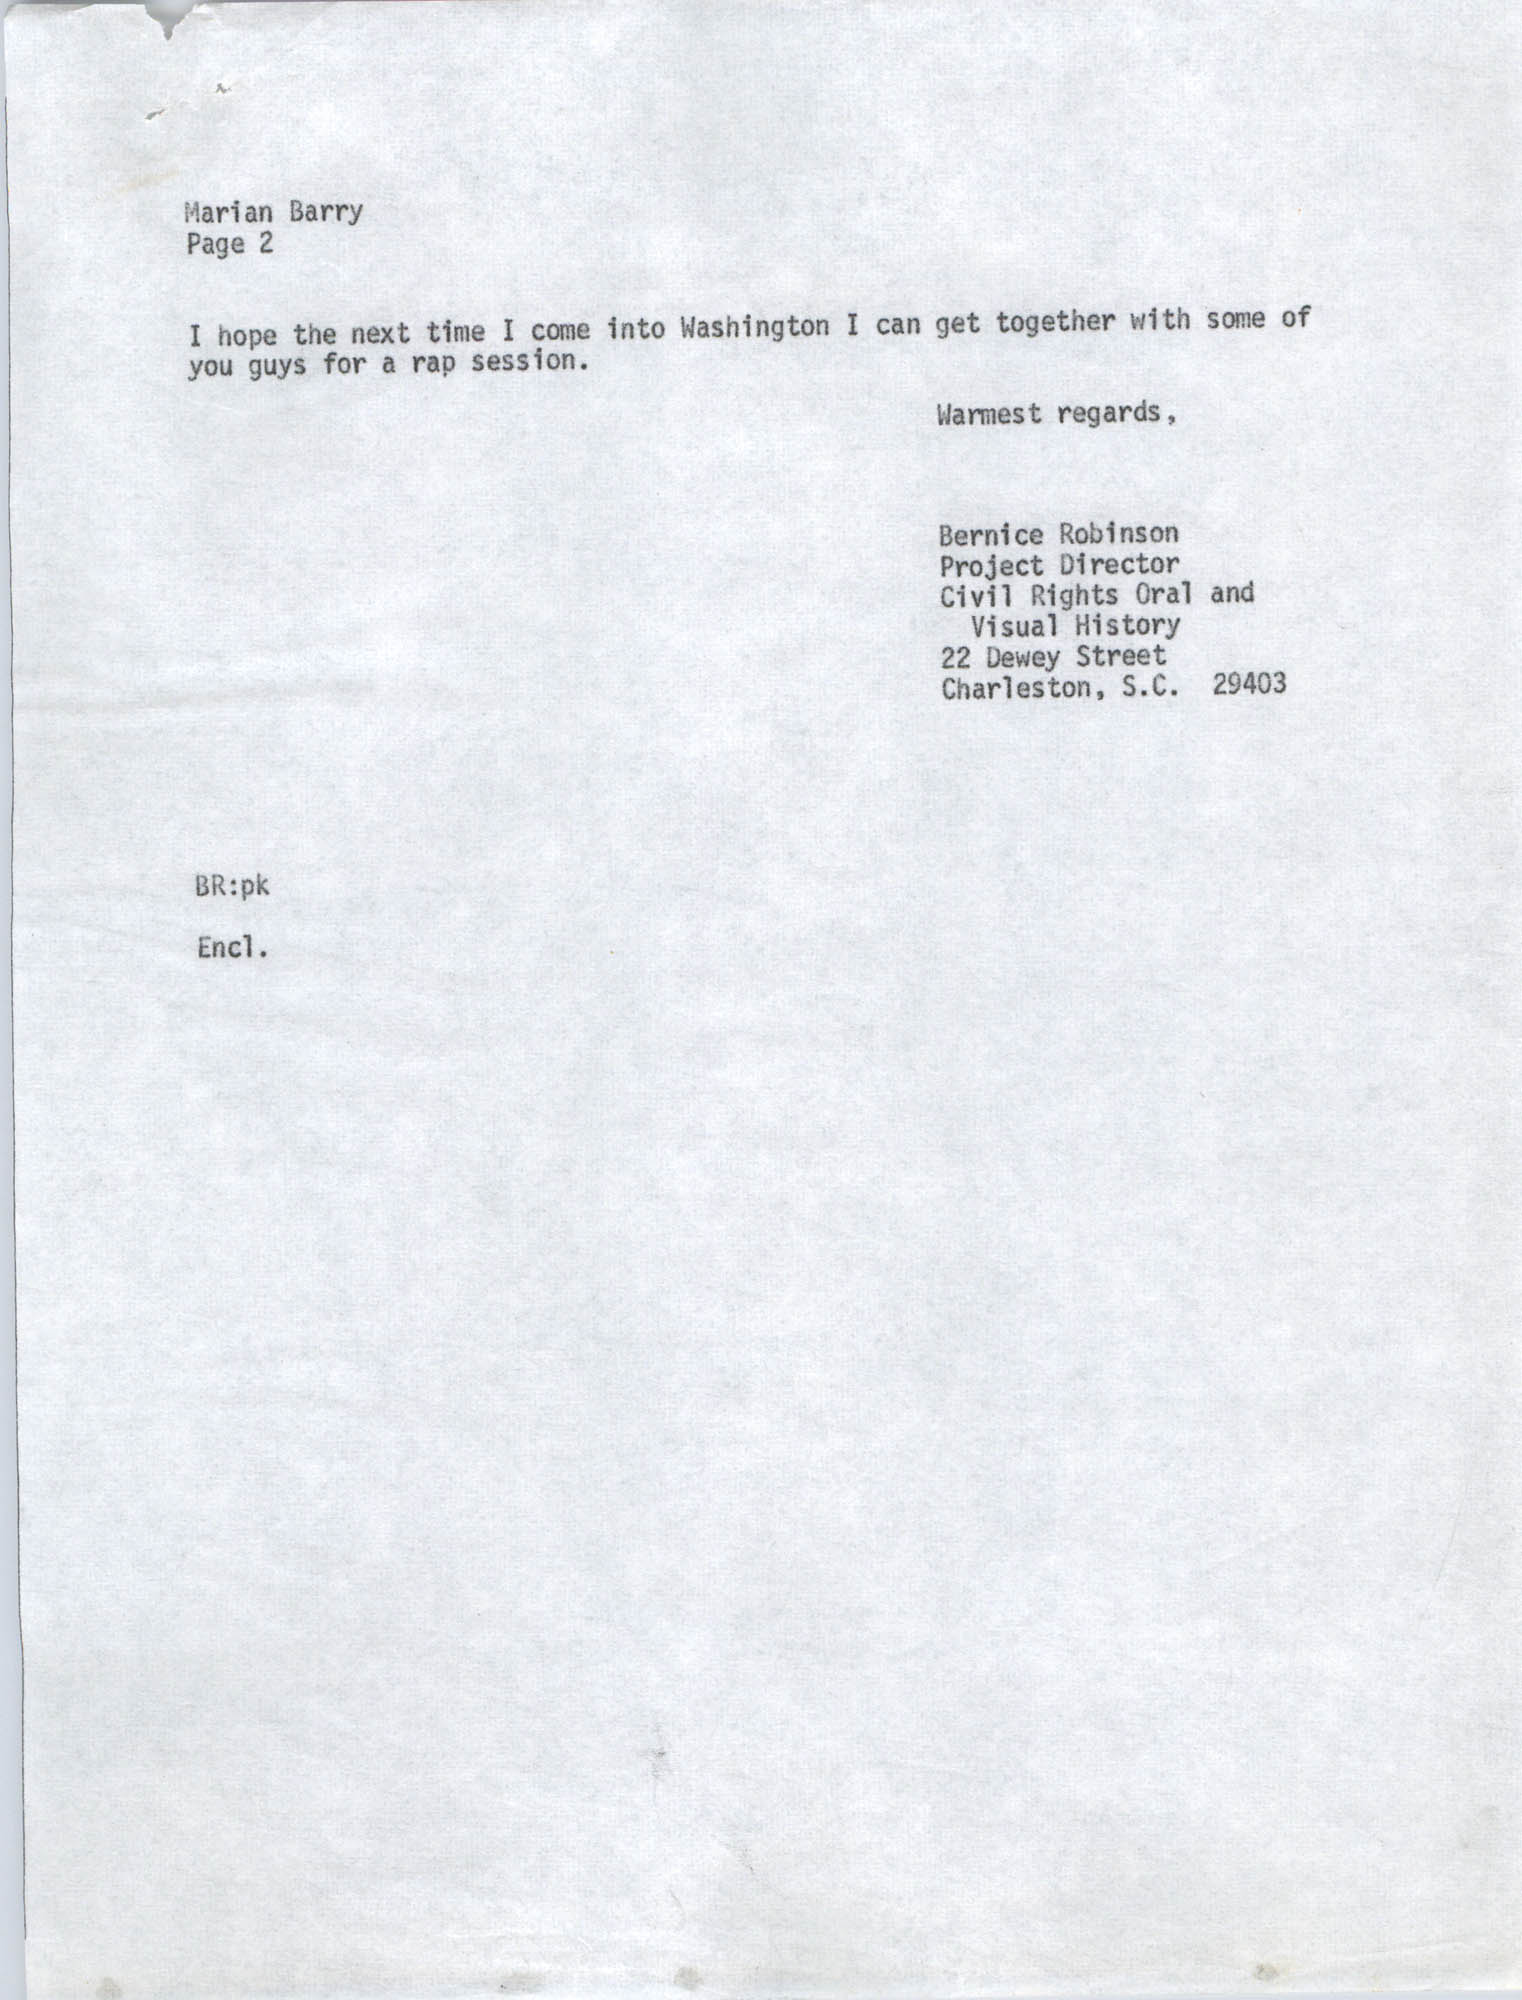 Letter from Bernice Robinson to Marian Berry, May 7, 1973, Draft Page 2